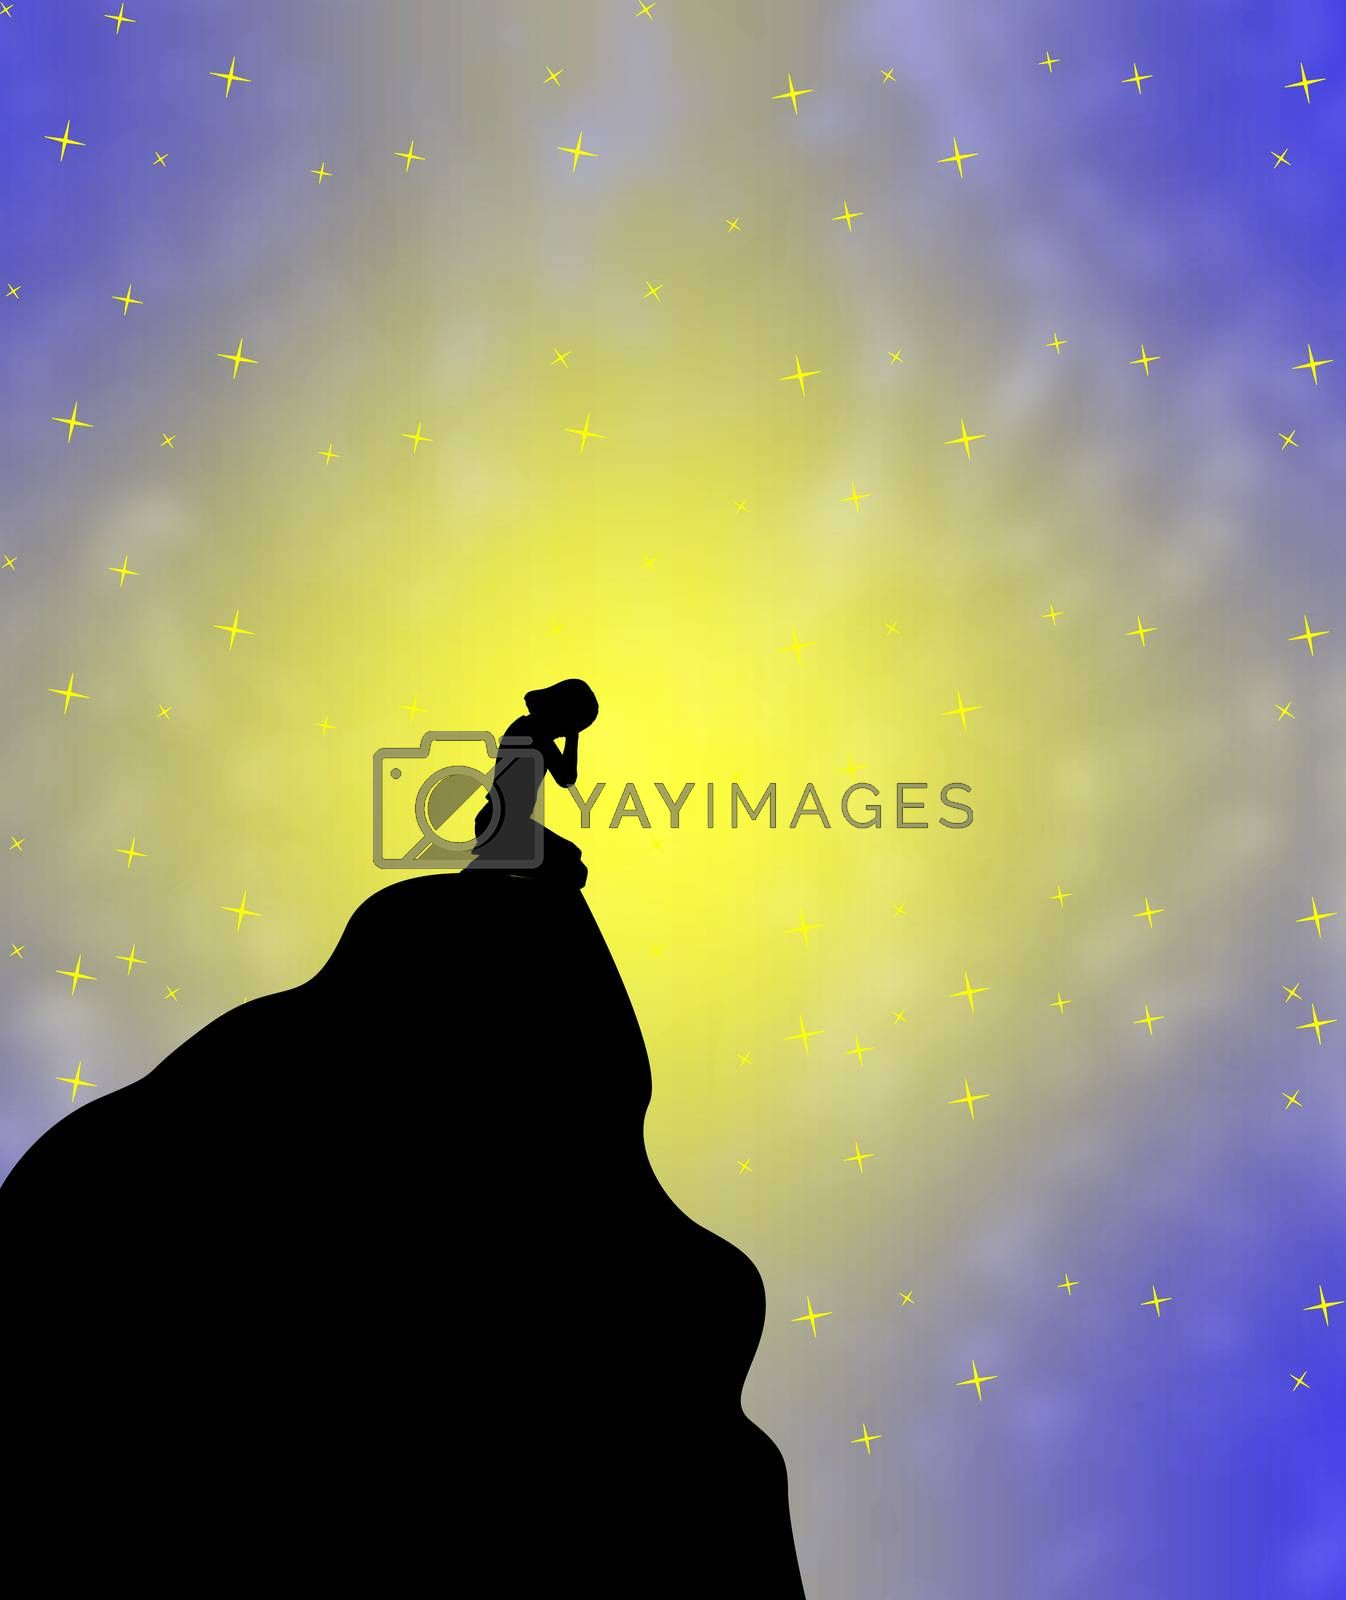 Concept sign and symbol of depressed kid left alone on the peak of a mountain